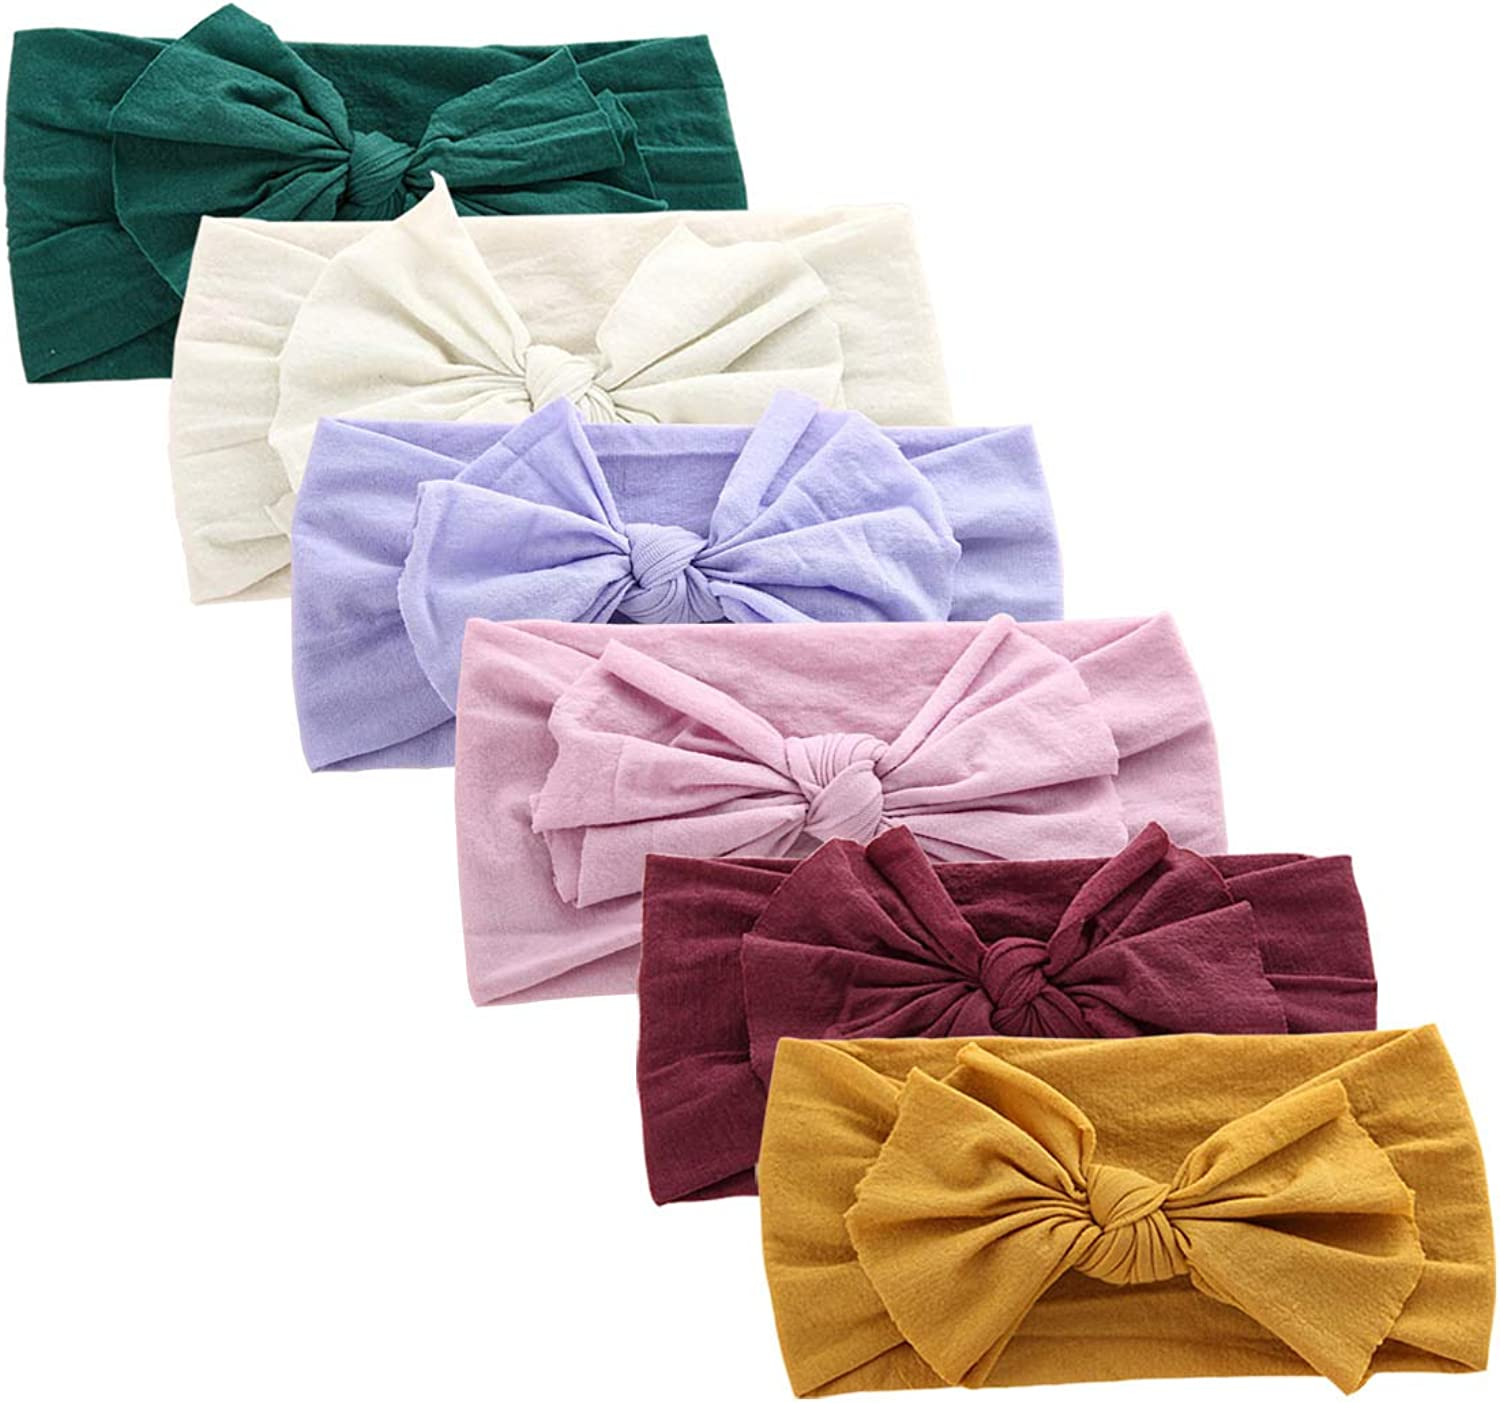 6PCS Cute Headbands Low price for Baby wit Max 82% OFF Girl Nylon Girls